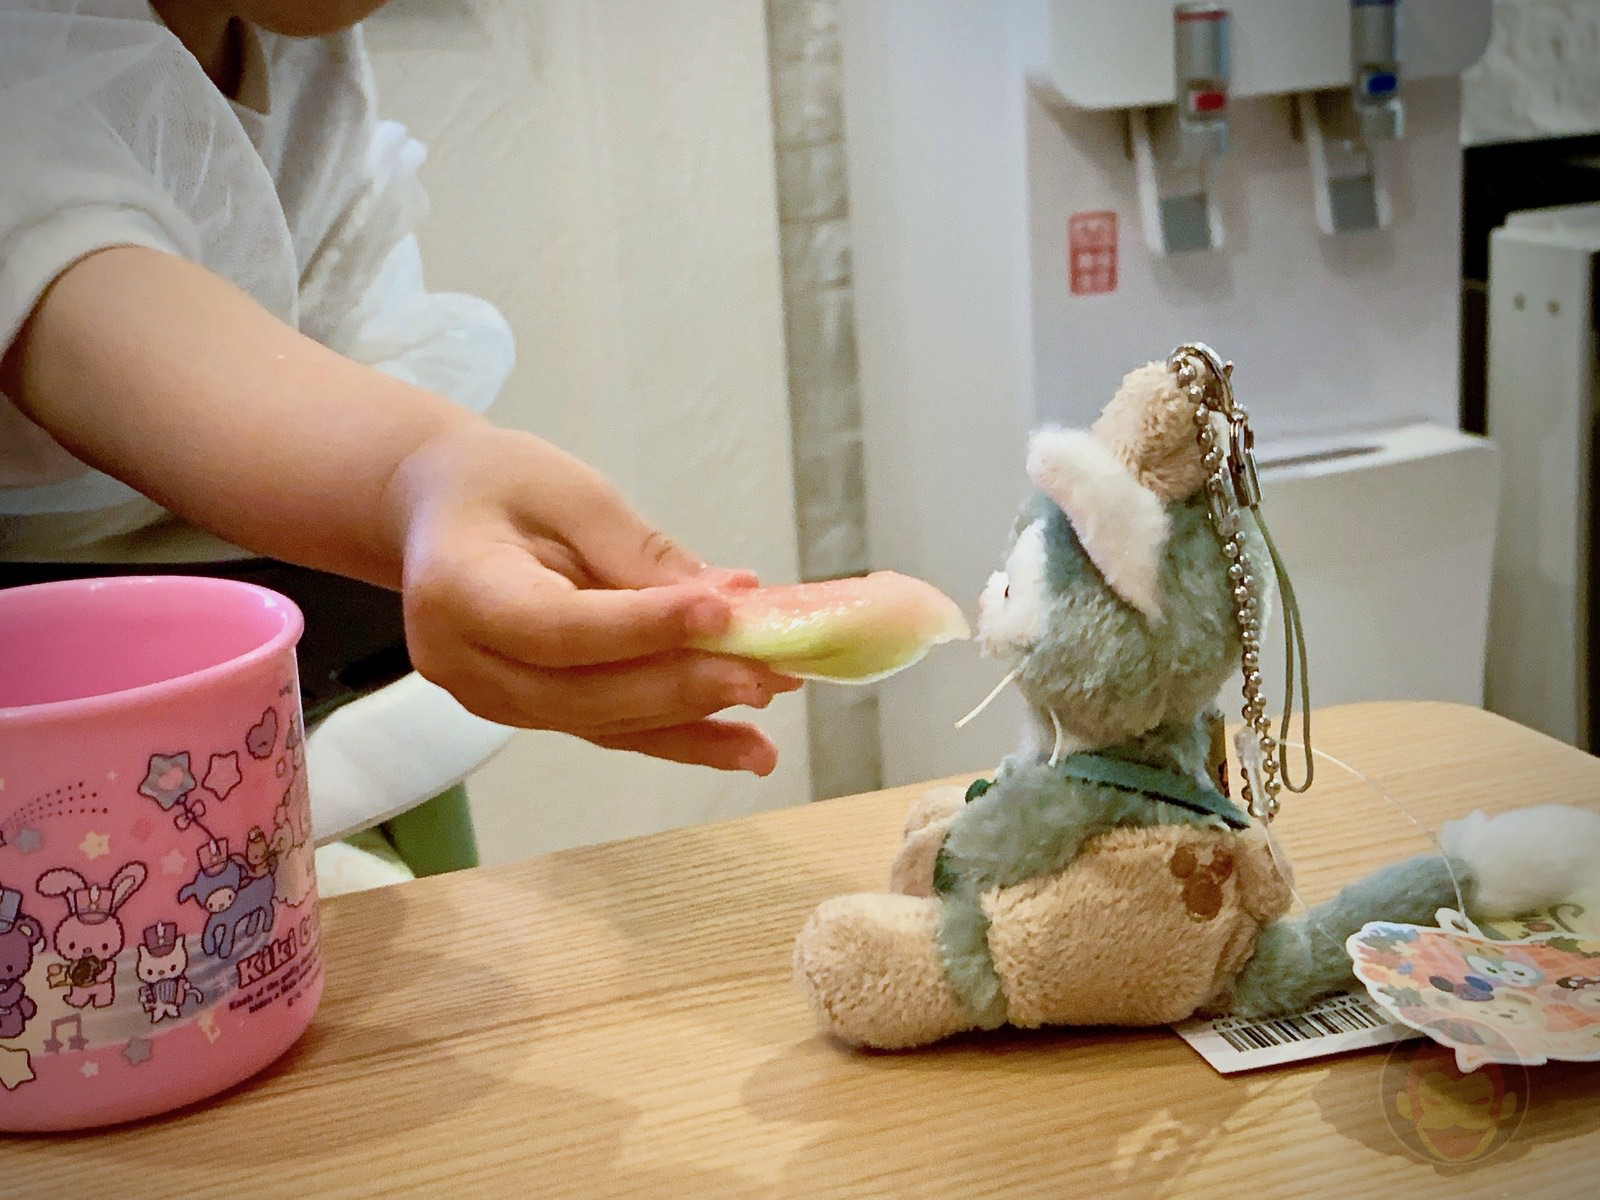 My-Daughter-giving-food-to-dolls-01.jpg